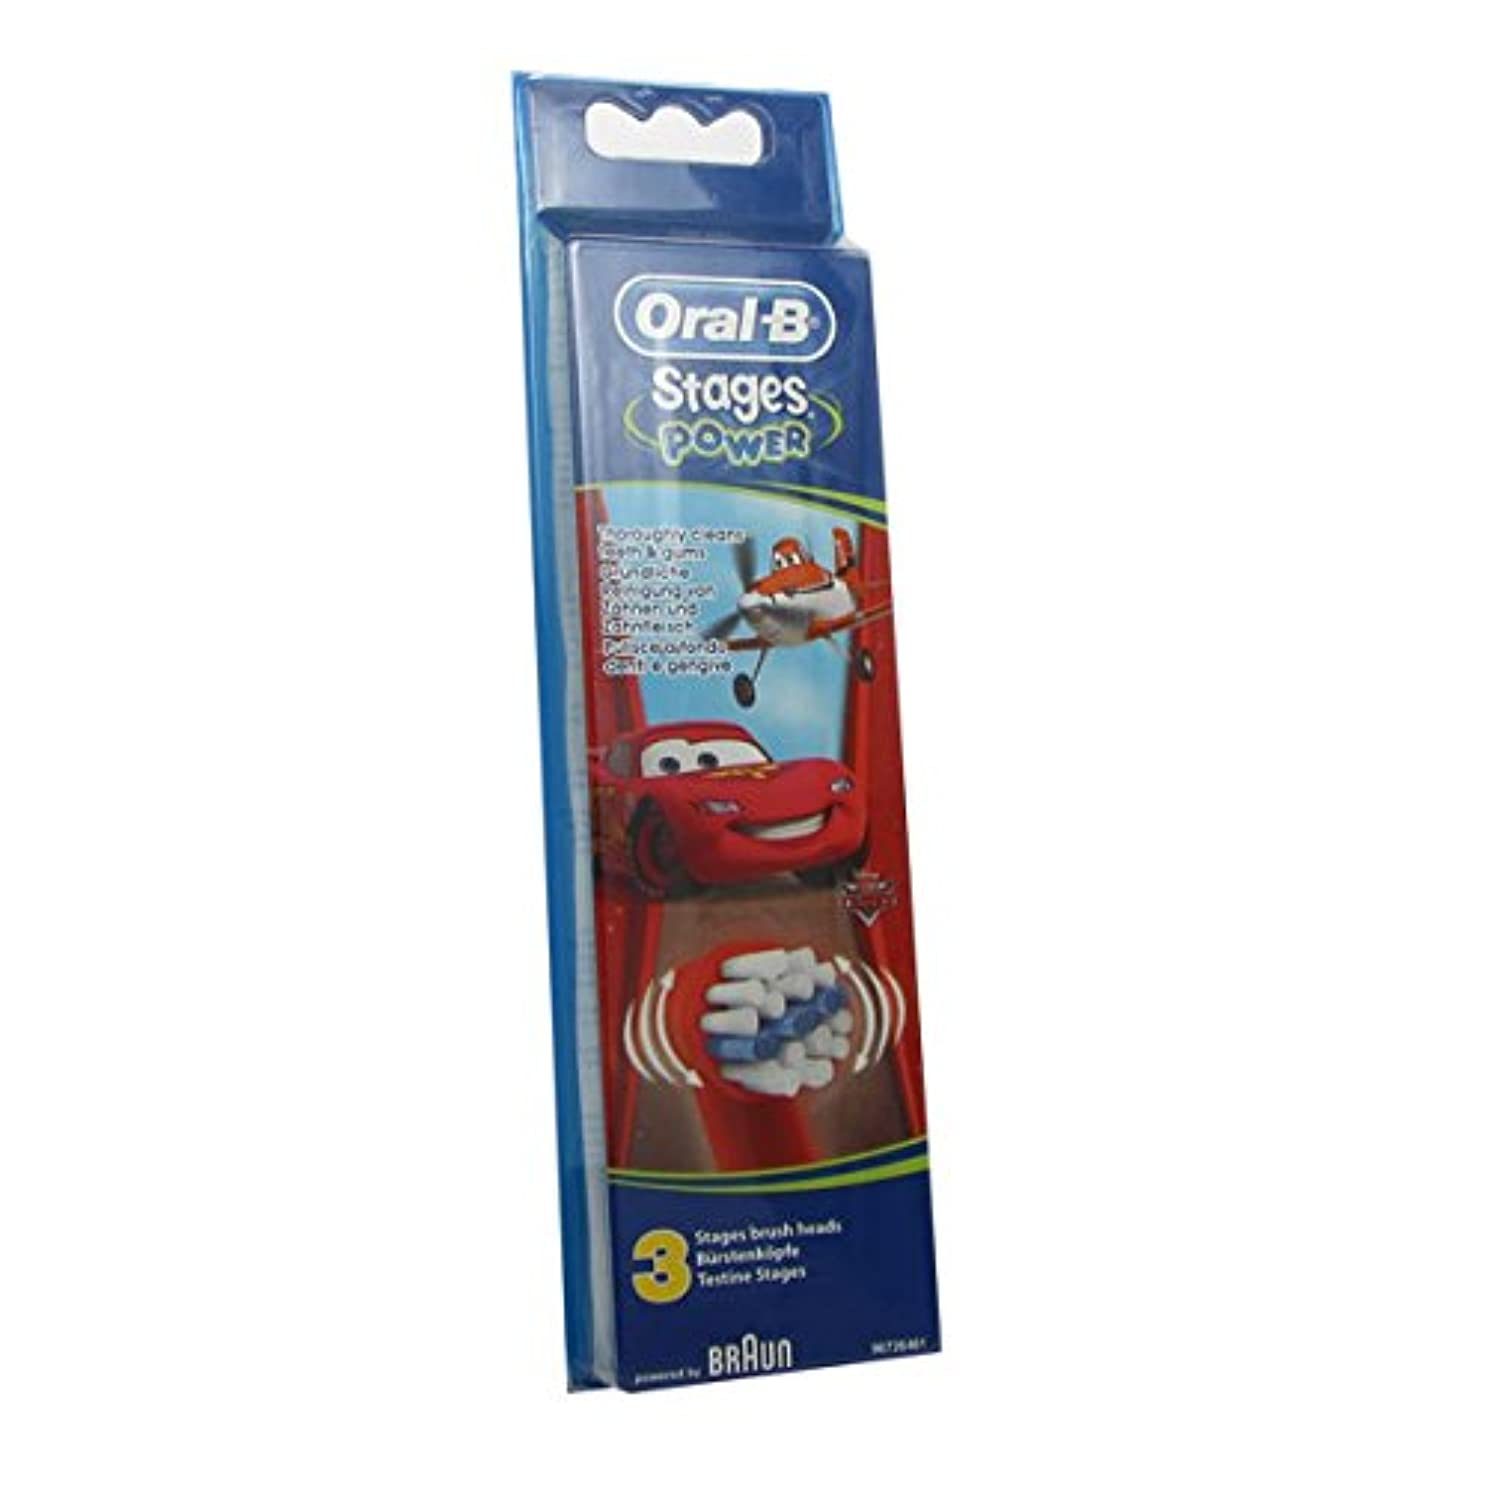 Oral B Stages Replacement Brush Cars X3 [並行輸入品]